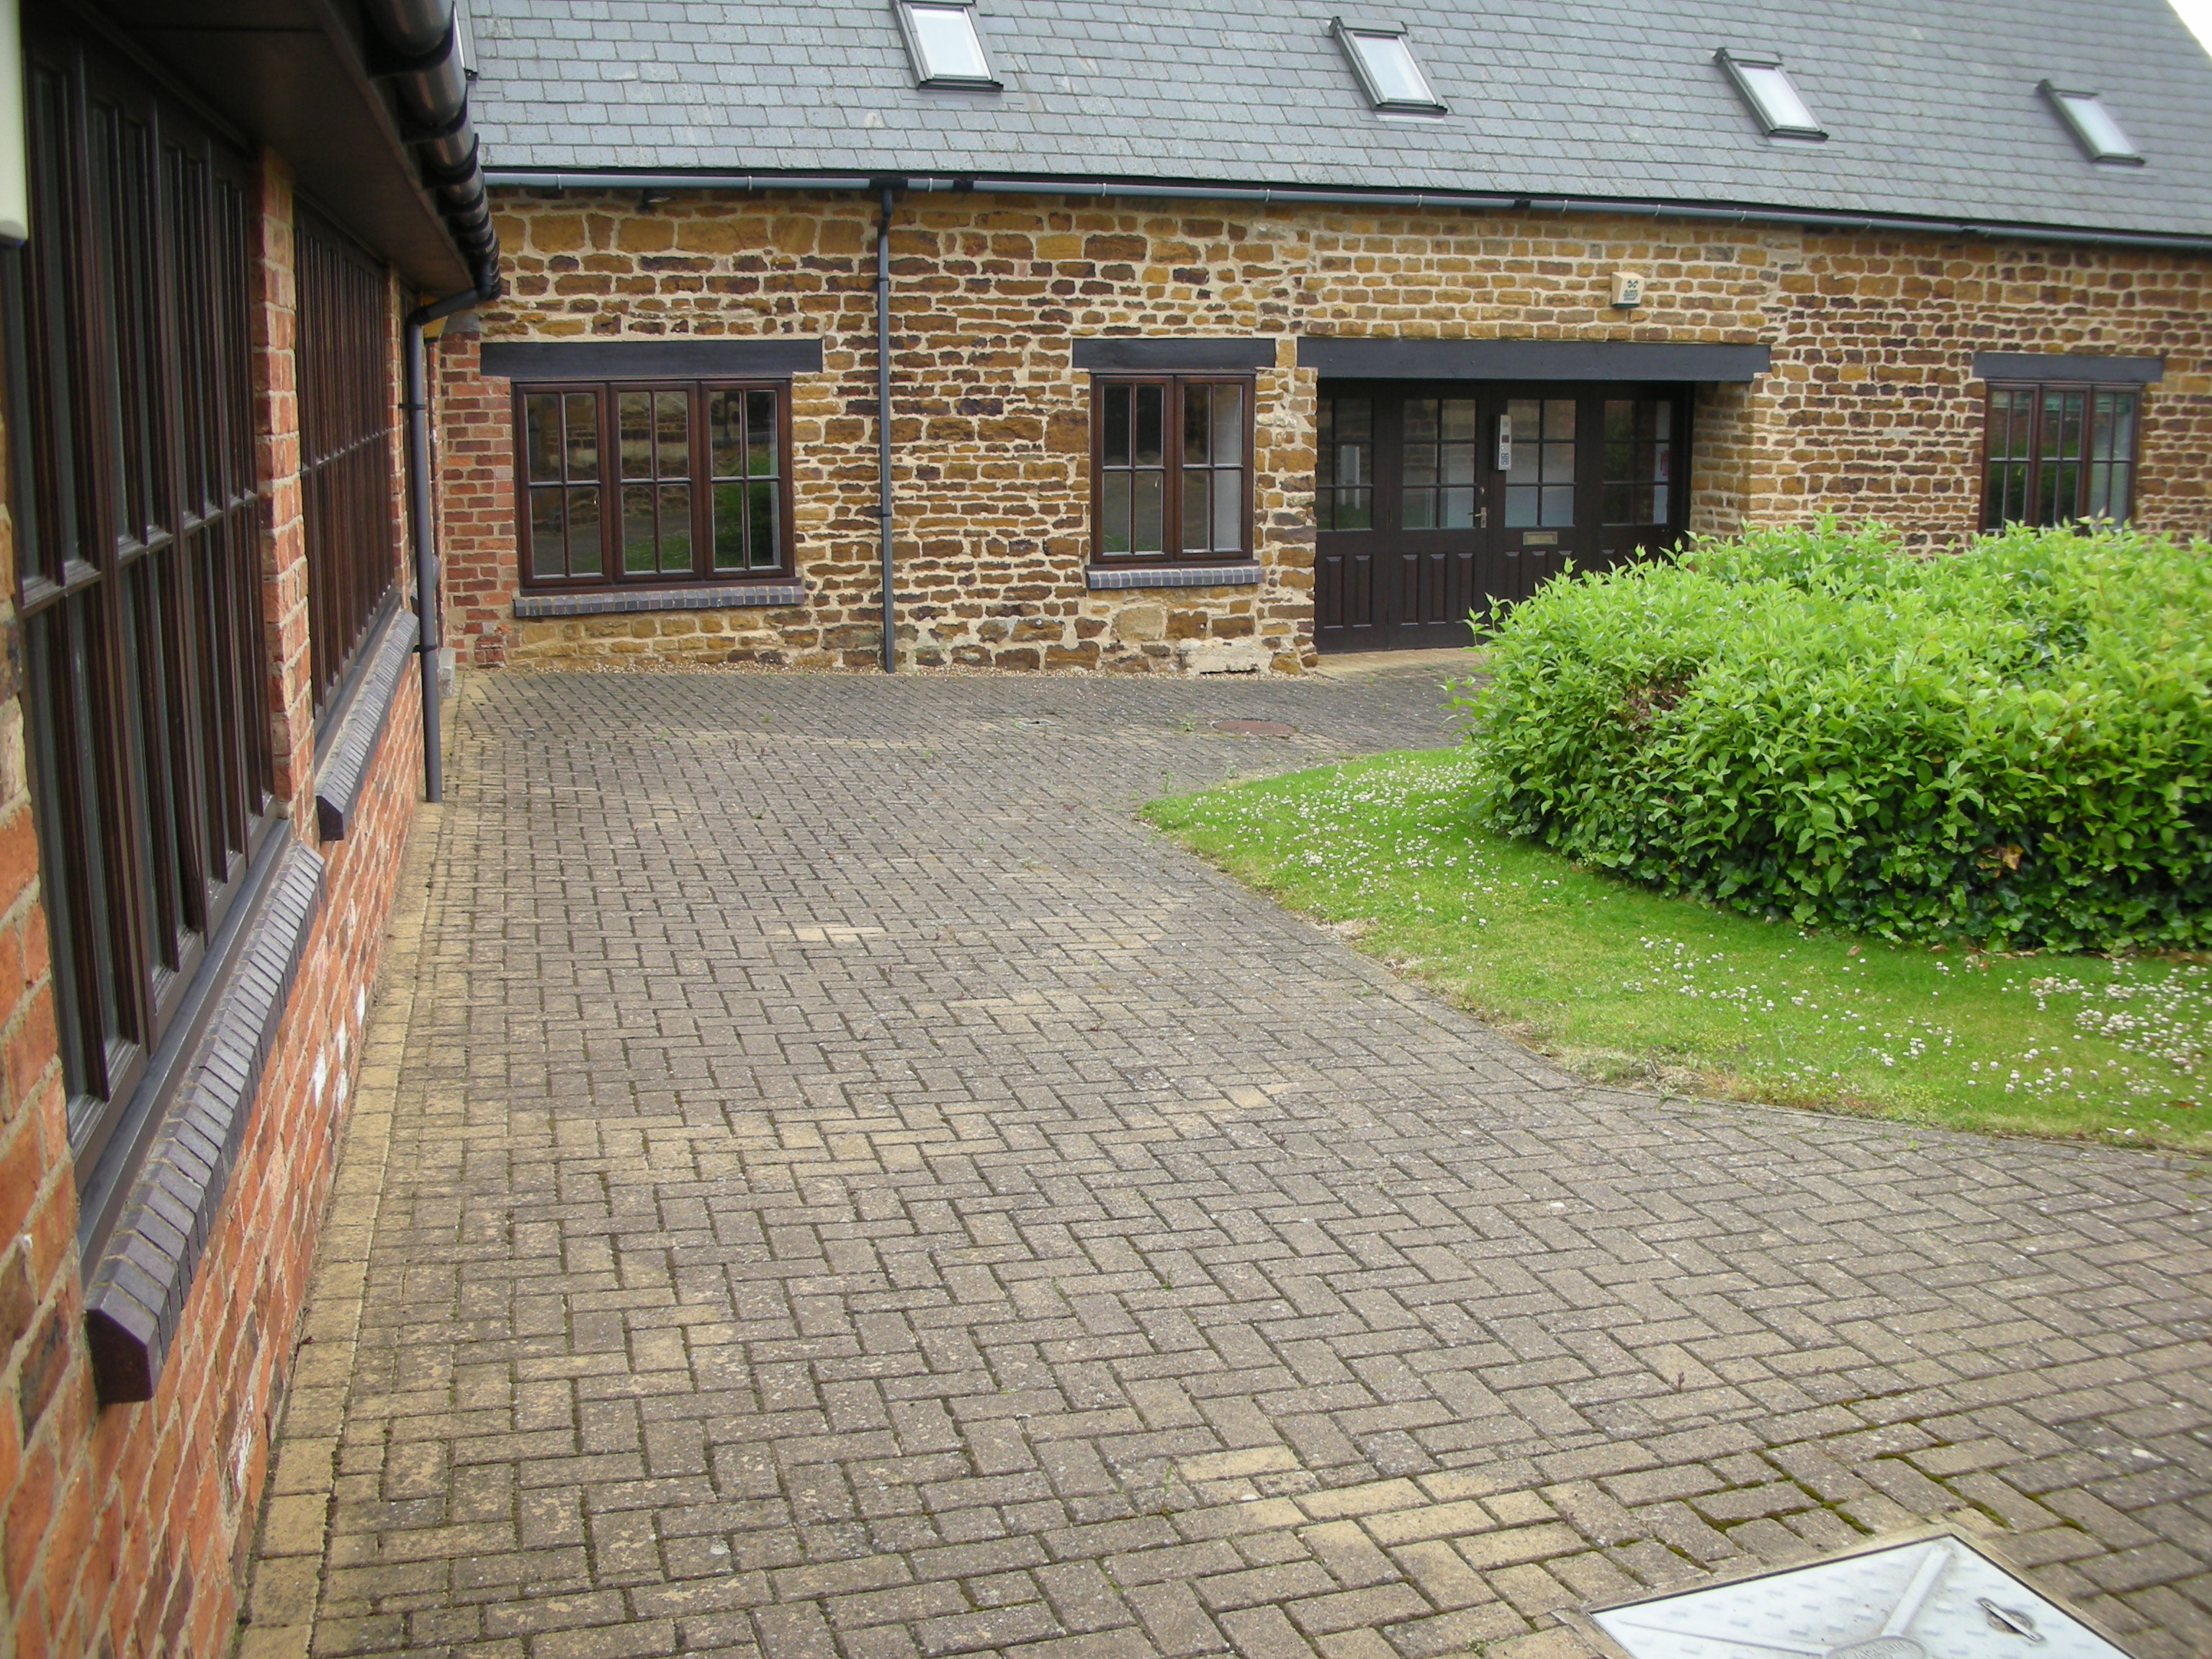 Jet Washing - Courtyard 2 pre-clean